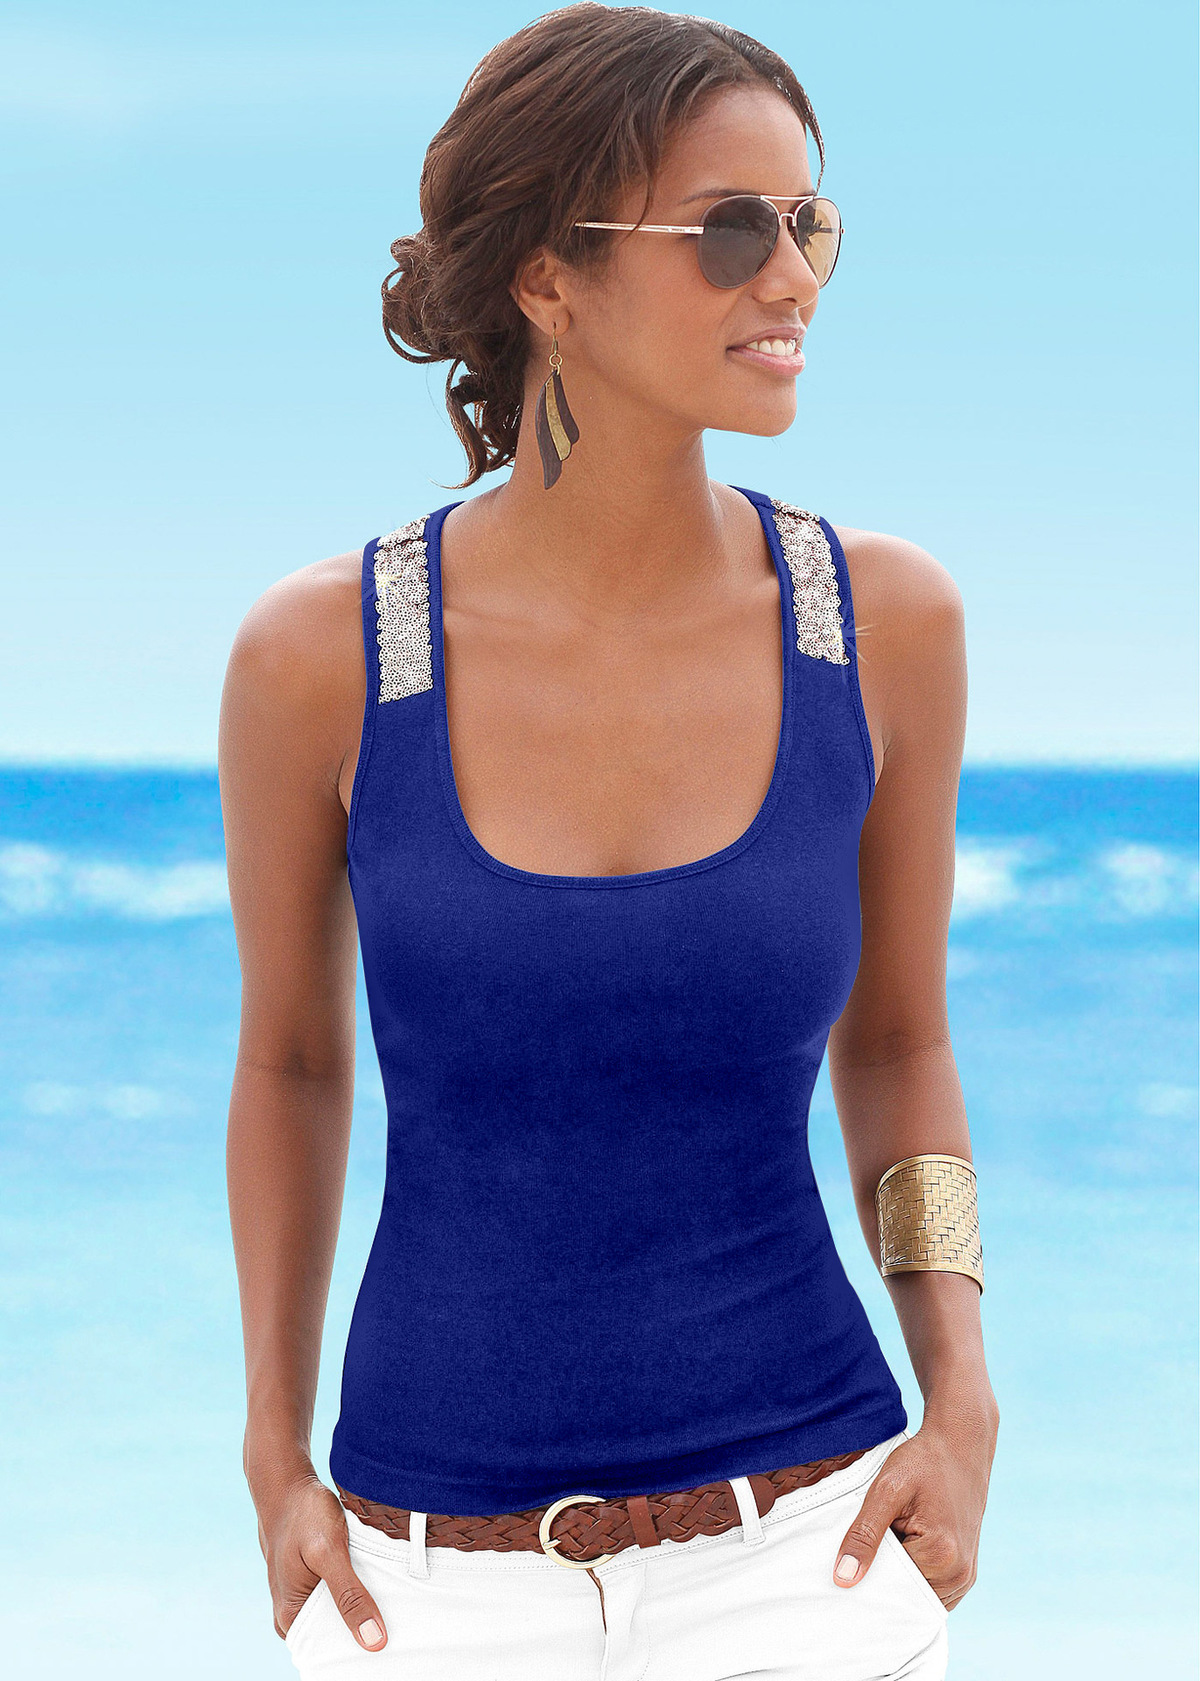 2018 Summer For Women T Shirt Sequin Sleeveless Loose Tank Top Bandage Casual Tops Camisole Tunic